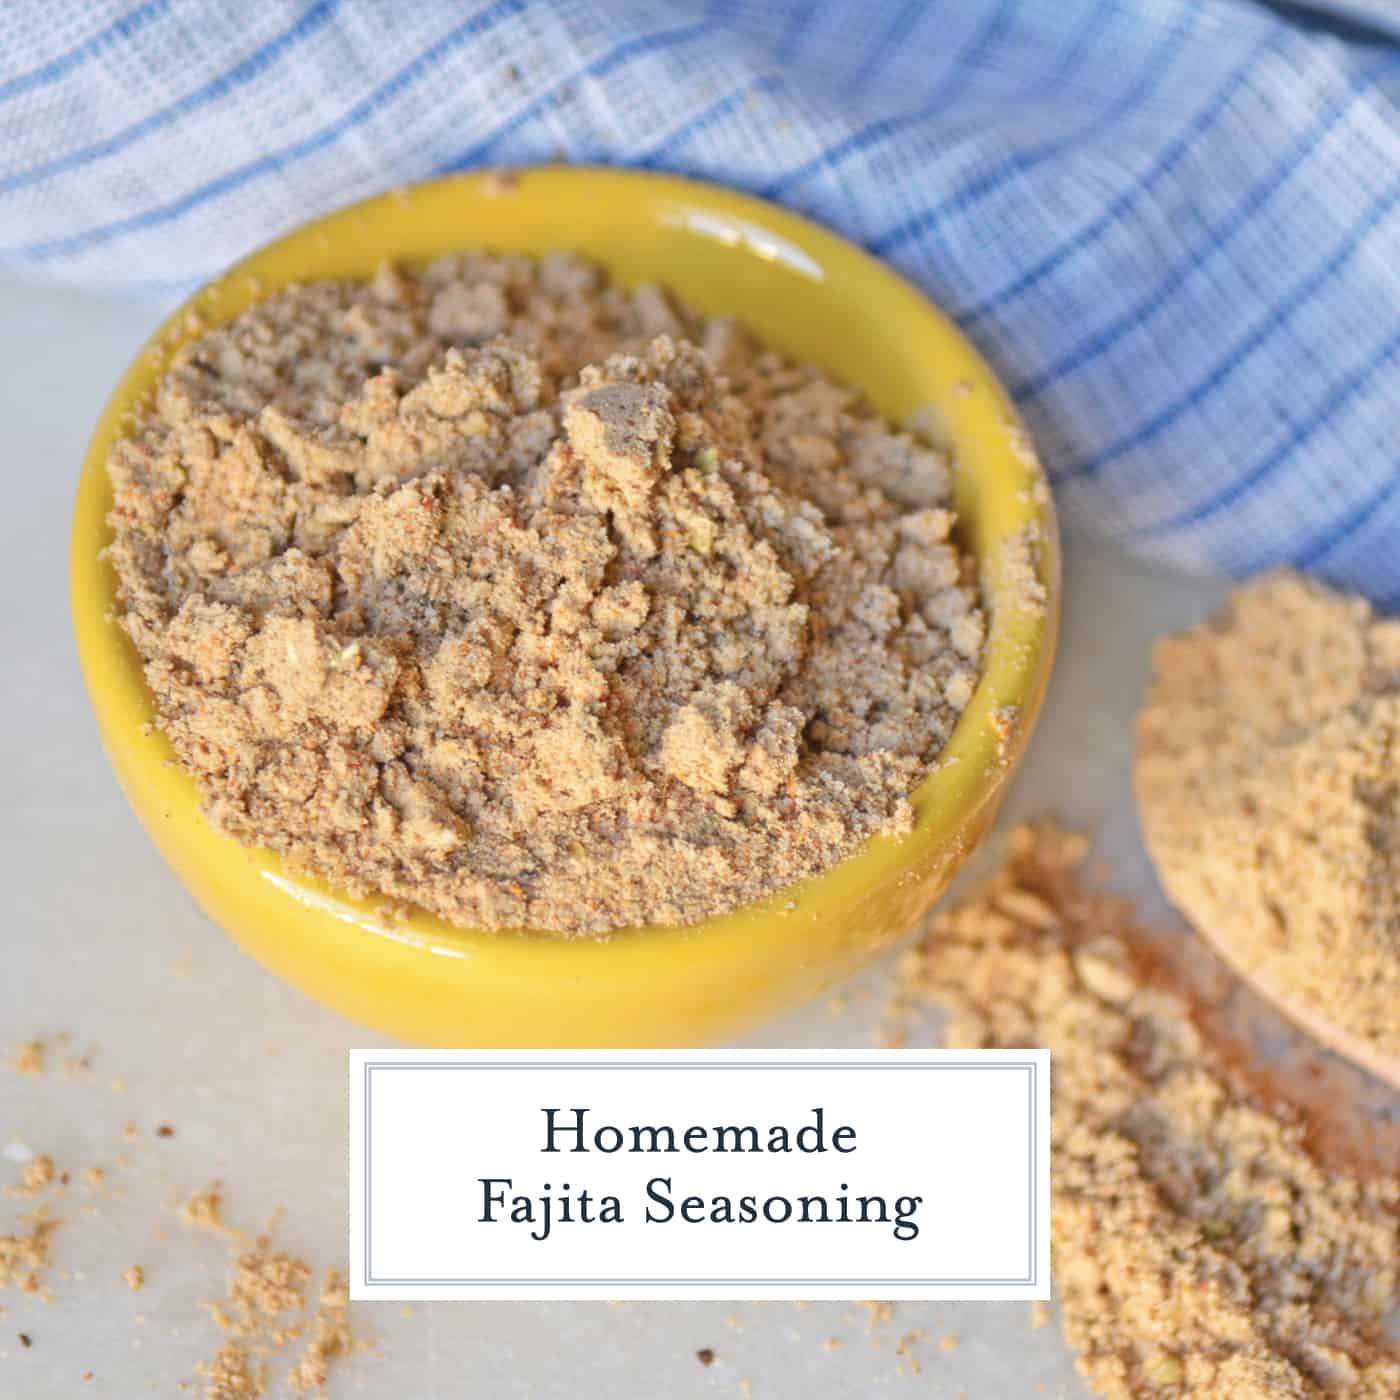 Homemade Fajita Seasoning is easy to make with spices you already have in your pantry. Control salt, sugar and heat by making your own for the best fajitas! #fajitaseasoning #fajitarecipe www.savoryexperiments.com